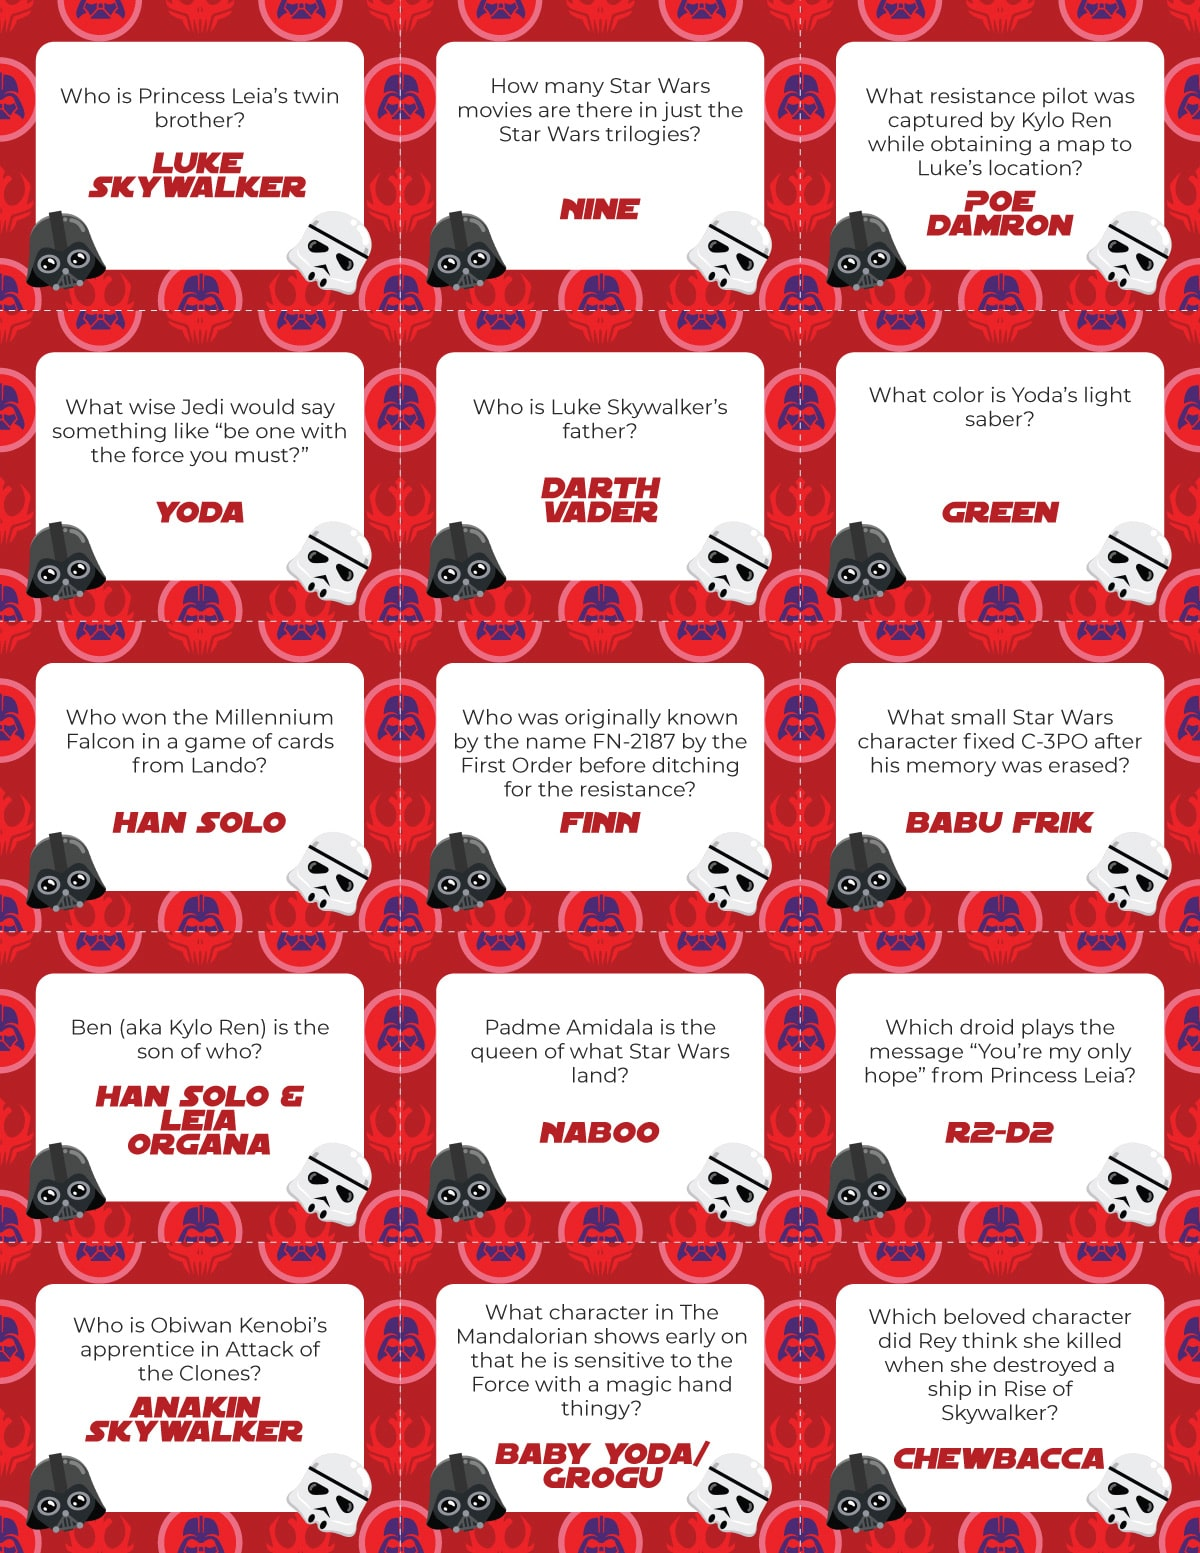 Star Wars trivia question cards with a red background